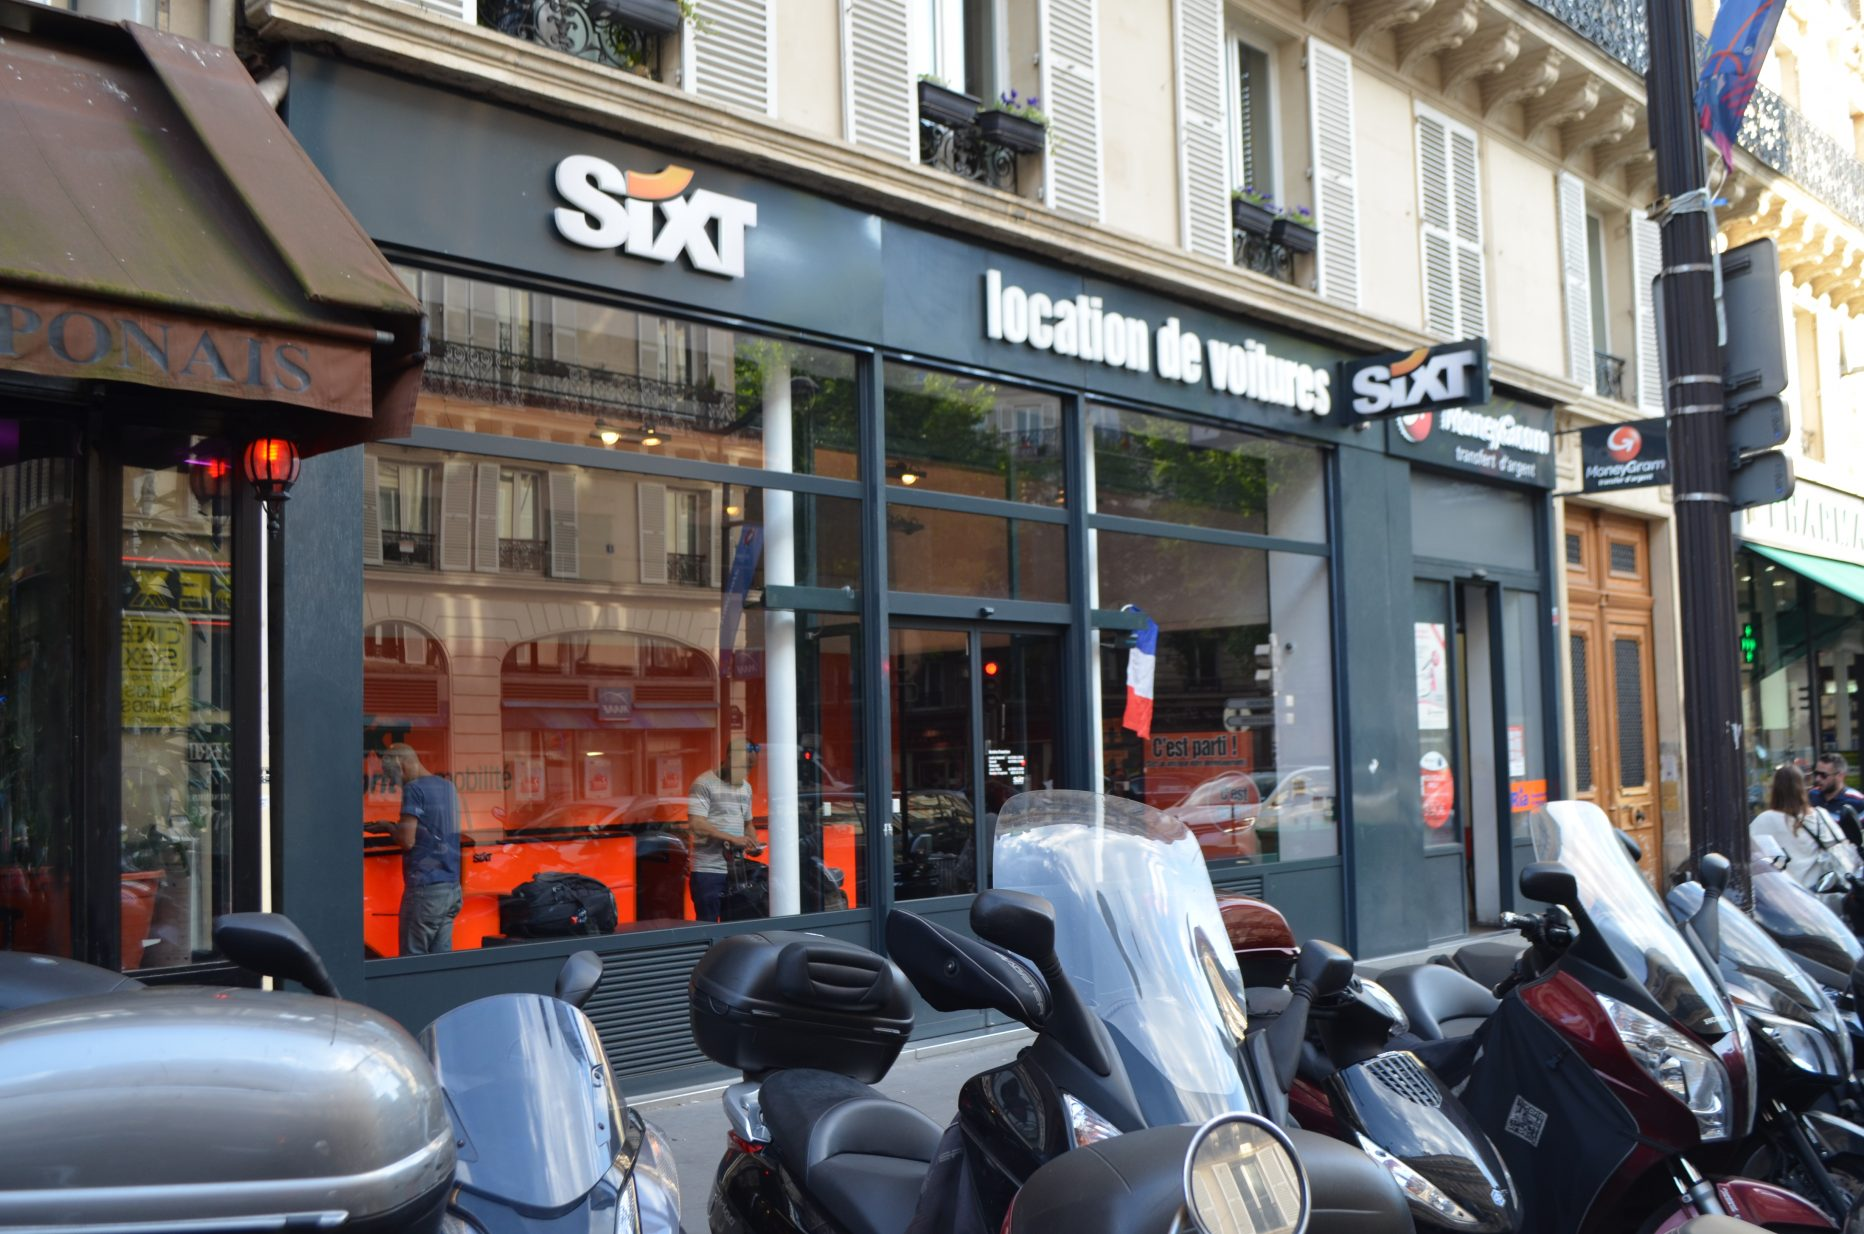 location voiture sixt strasbourg gare. Black Bedroom Furniture Sets. Home Design Ideas